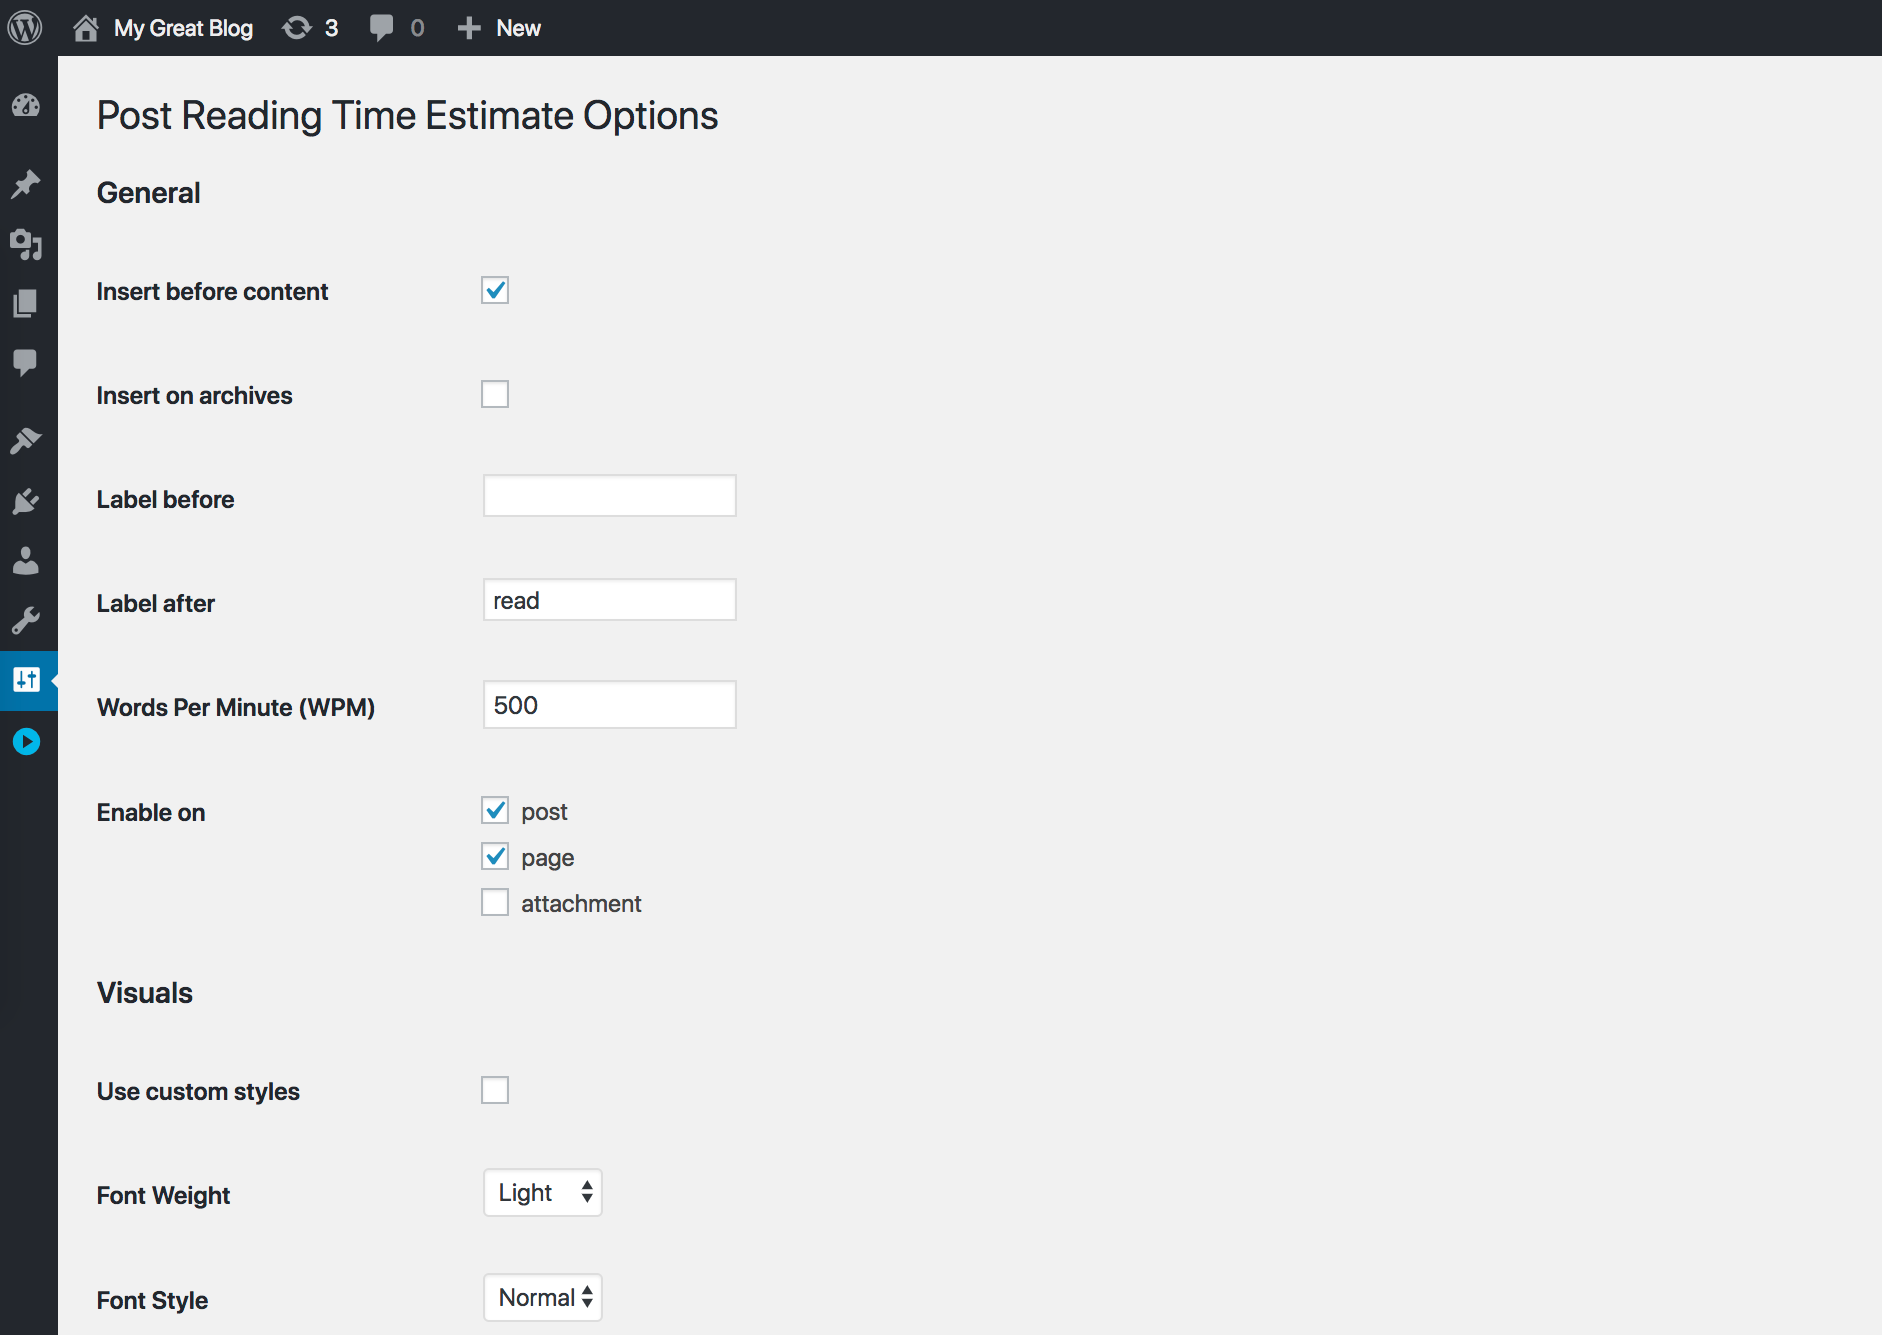 Fully customizable Read Time Estimate for your posts, pages, and custom post types!